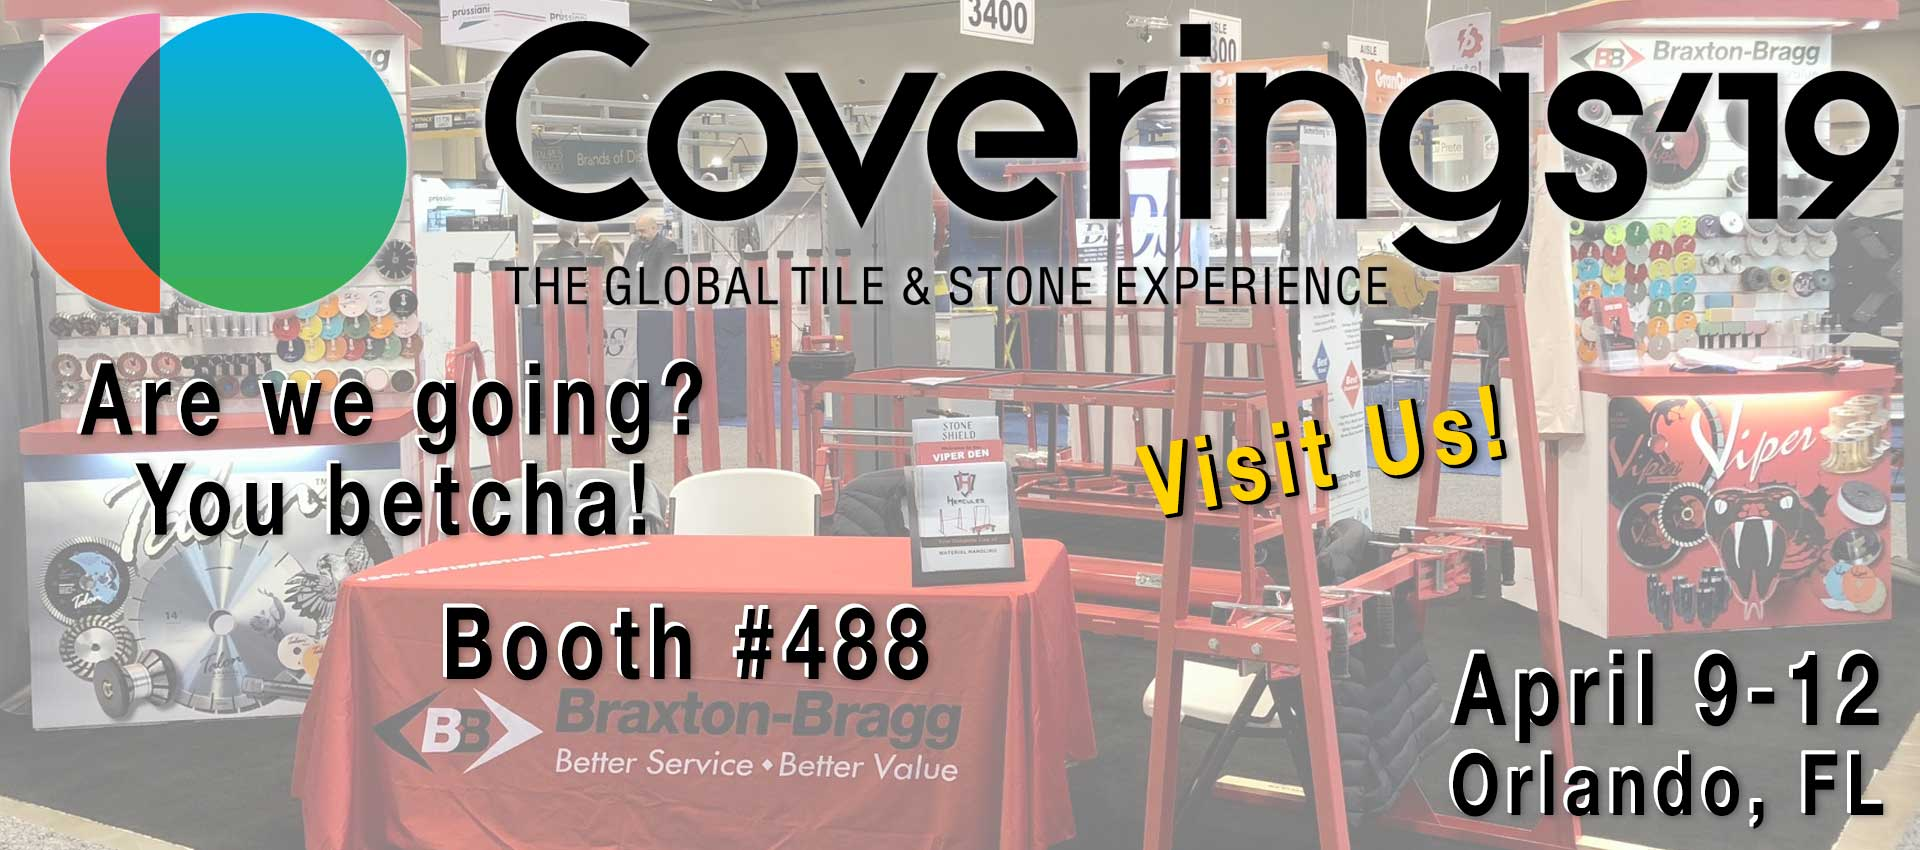 Coverings 2019 - Orlando, FL